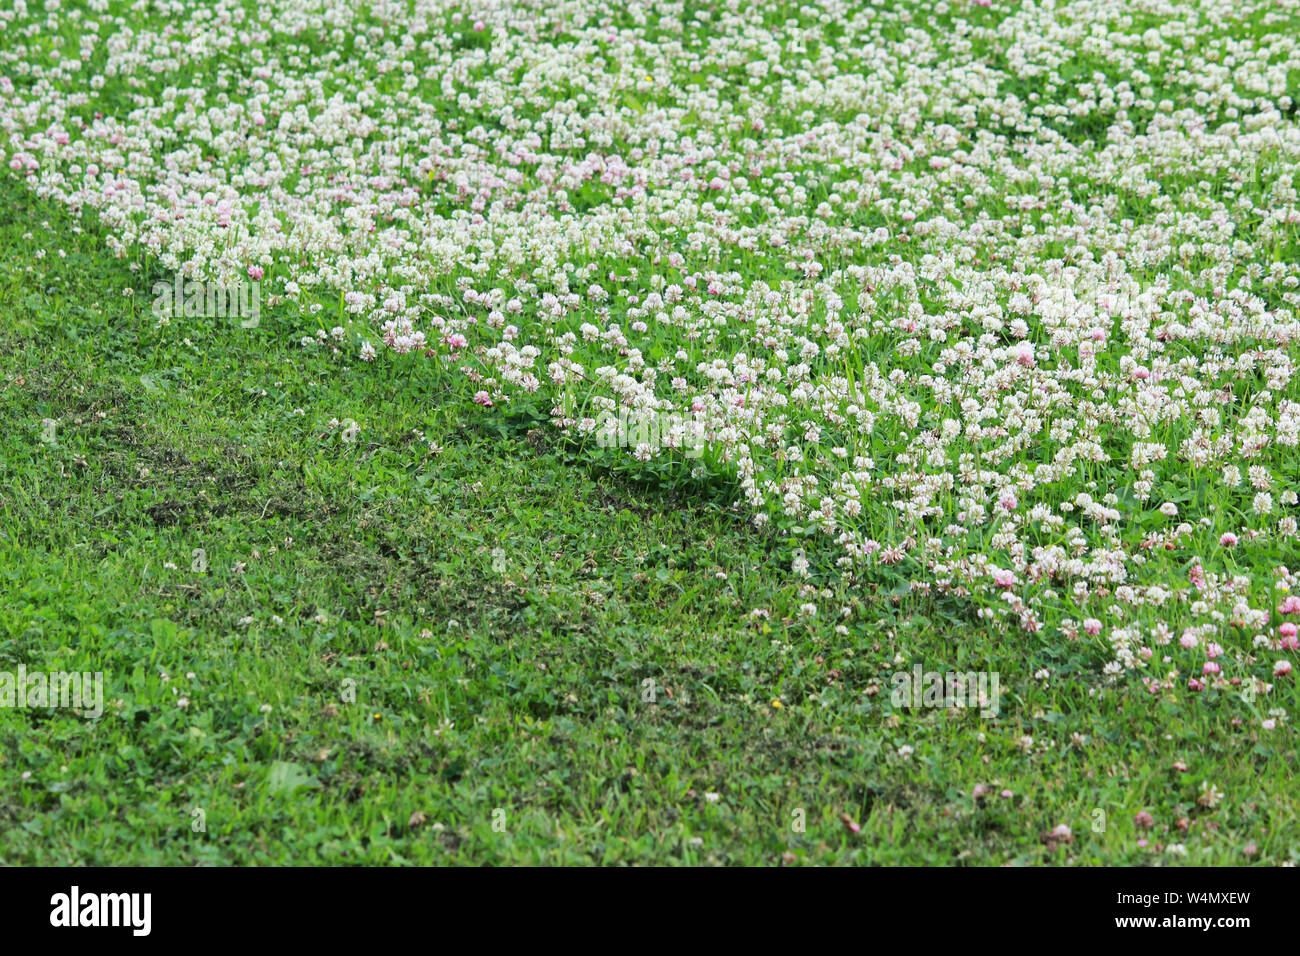 Trifolium repens and Trifolium pratense. A lawn densely overgrown with clover. grass shearing lawn mowers Stock Photo